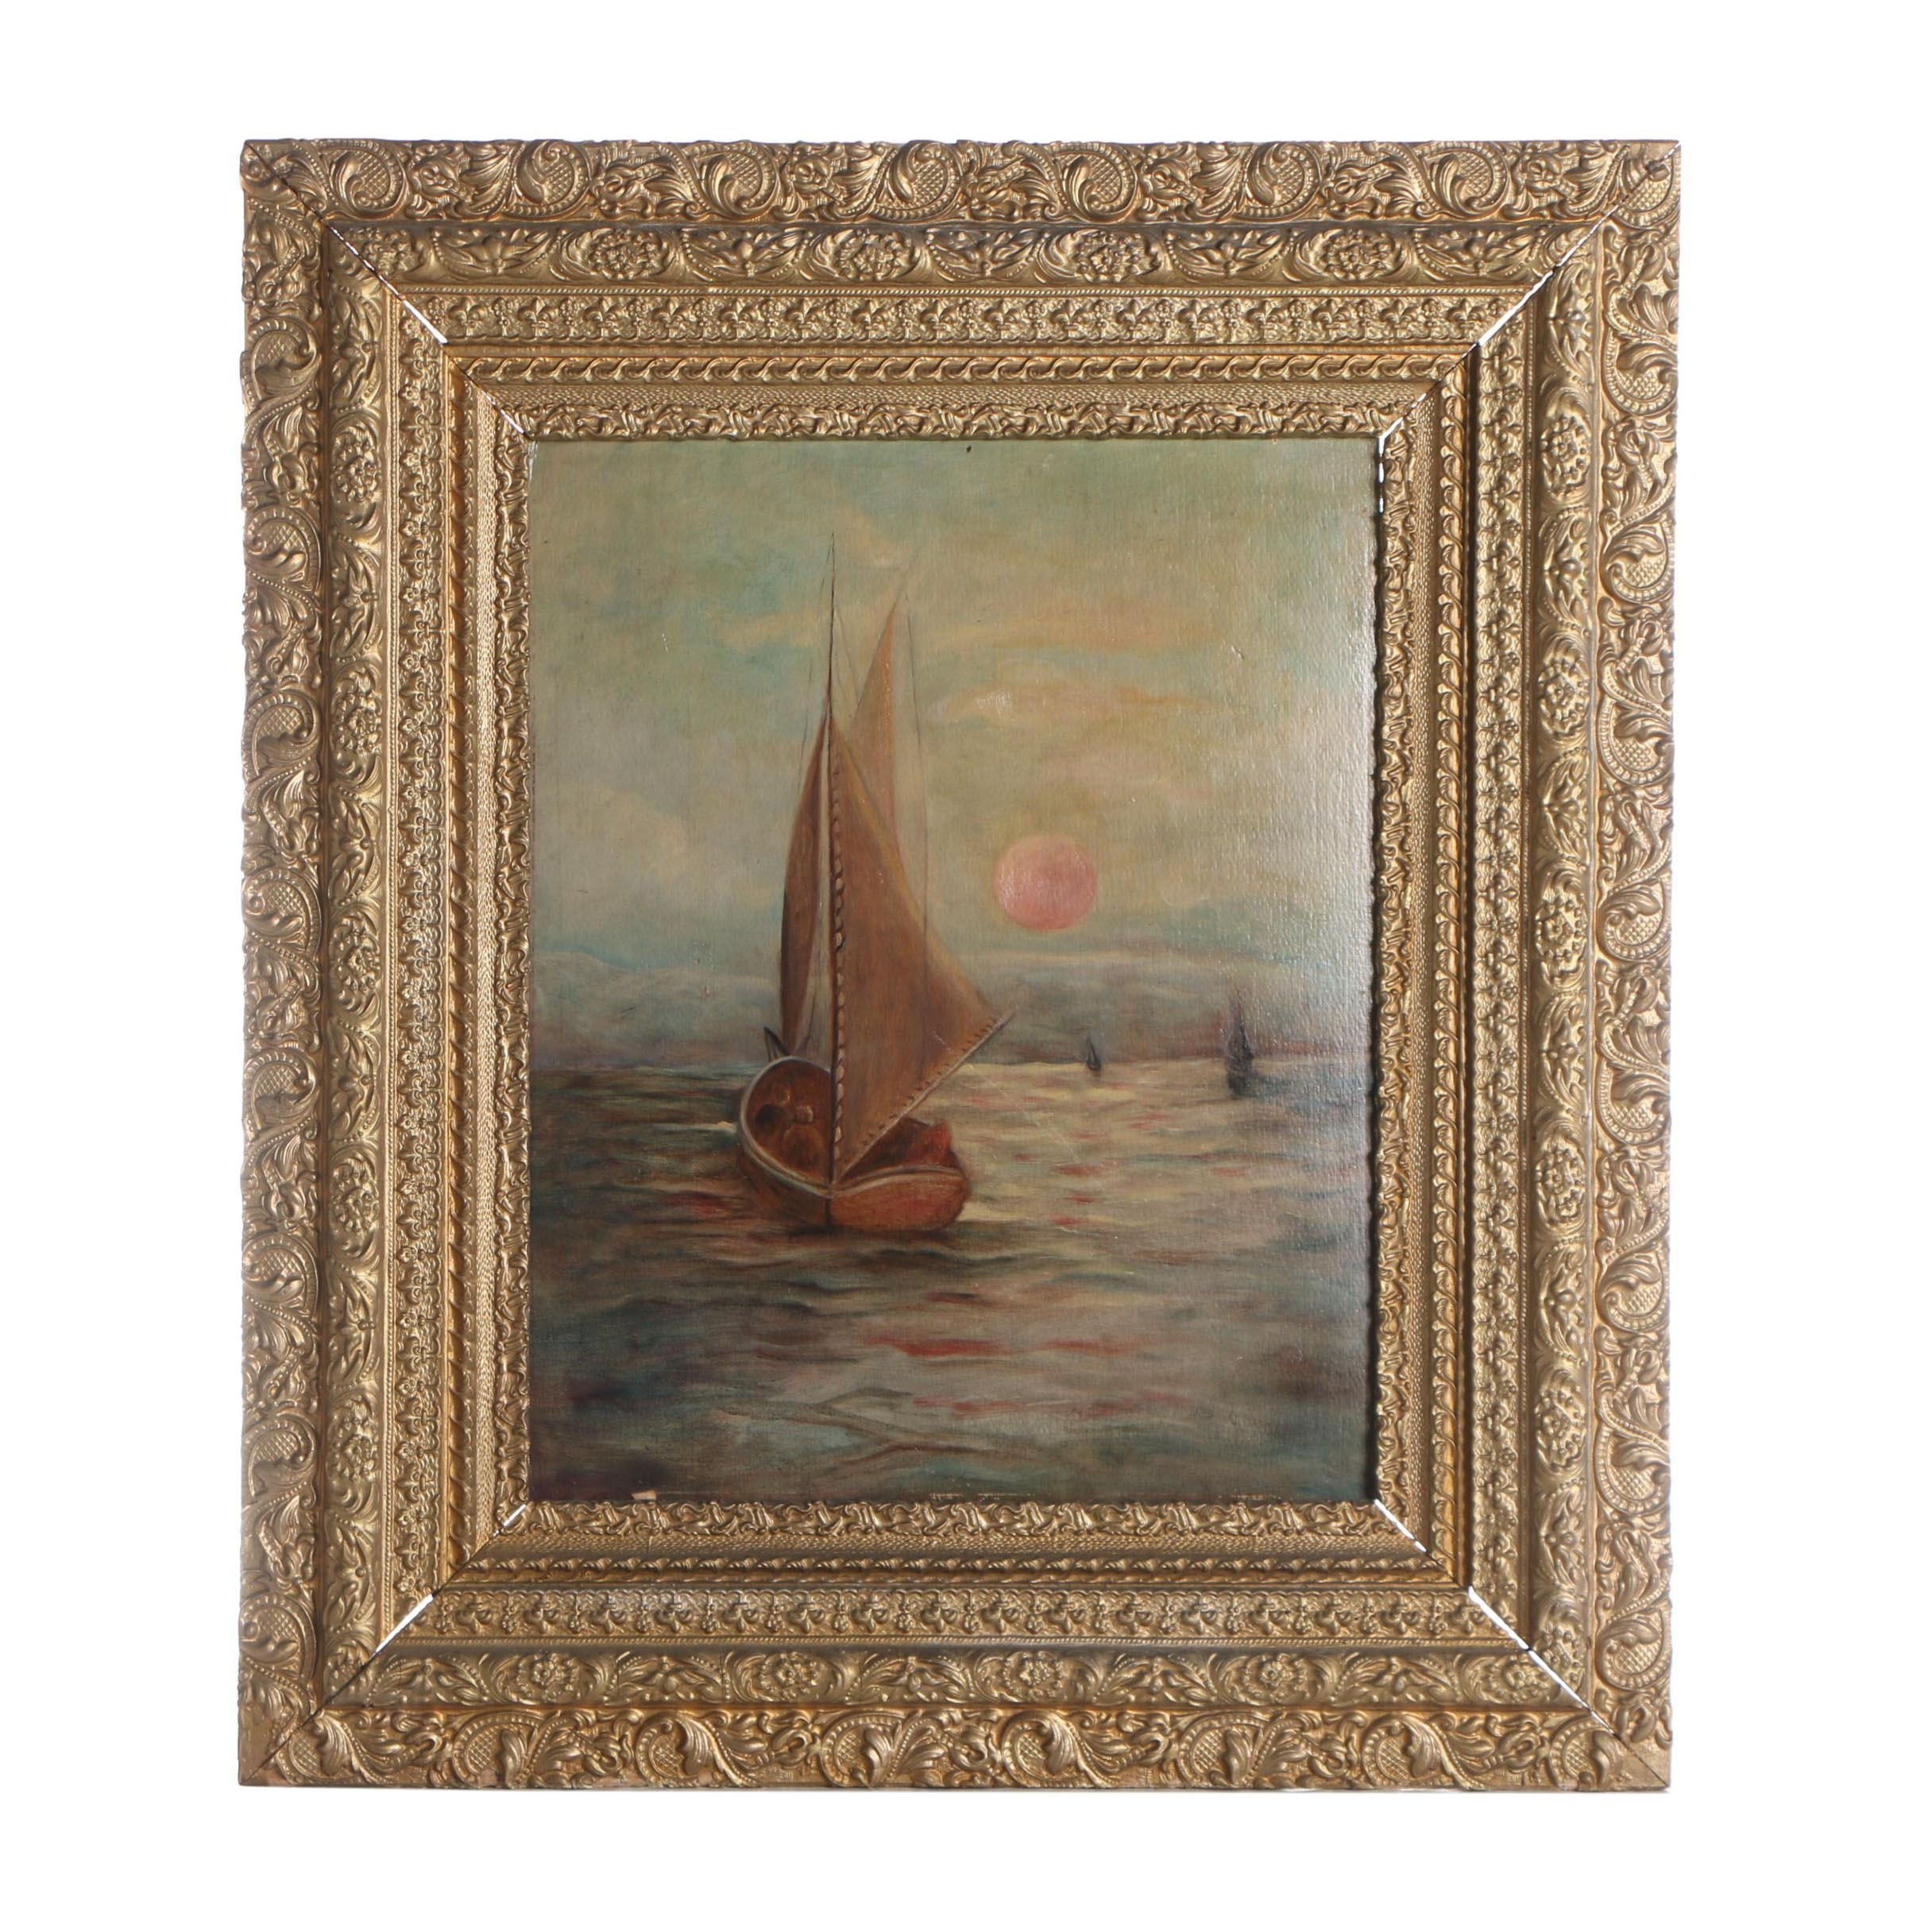 Antique Oil Painting of a Sailboat